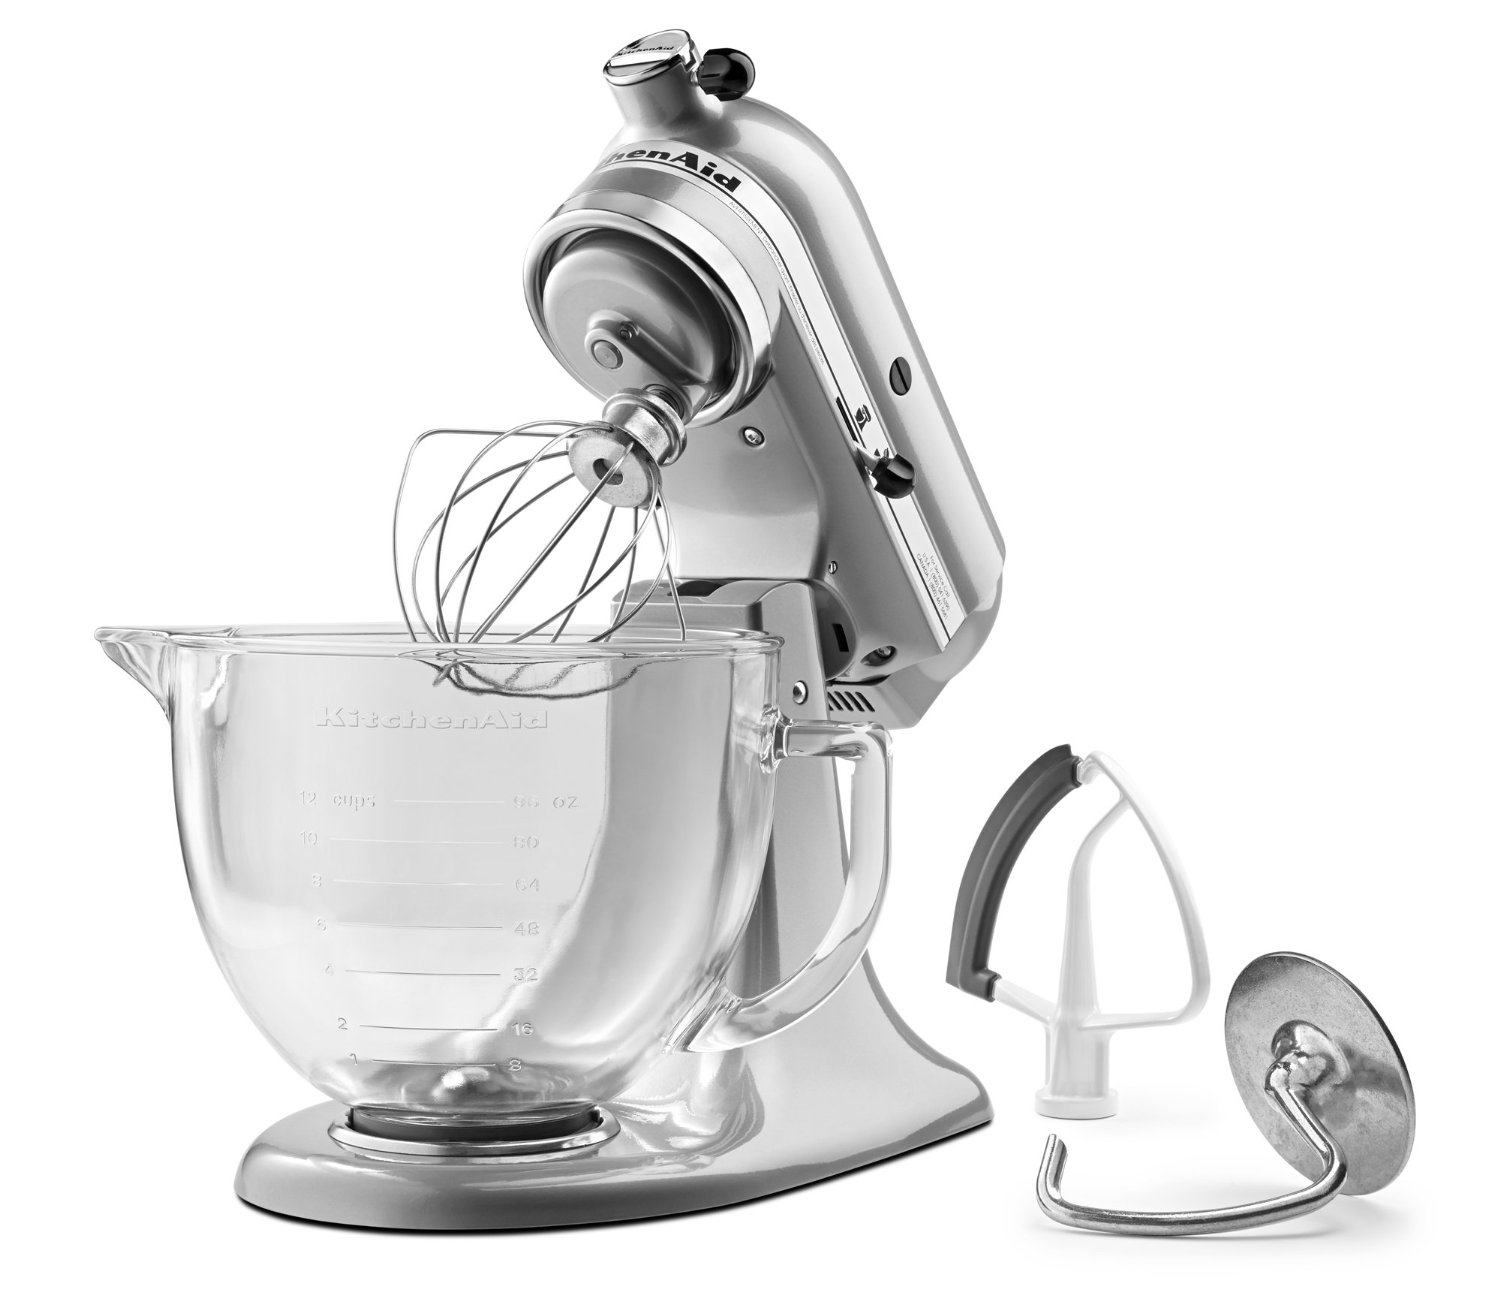 KitchenAid KSM105GBCMC 5 Qt. Tilt Head Stand Mixer With Glass Bowl And Flex  Edge Beater U2013 Metallic Chrome Only $219.99, Down From $359 .